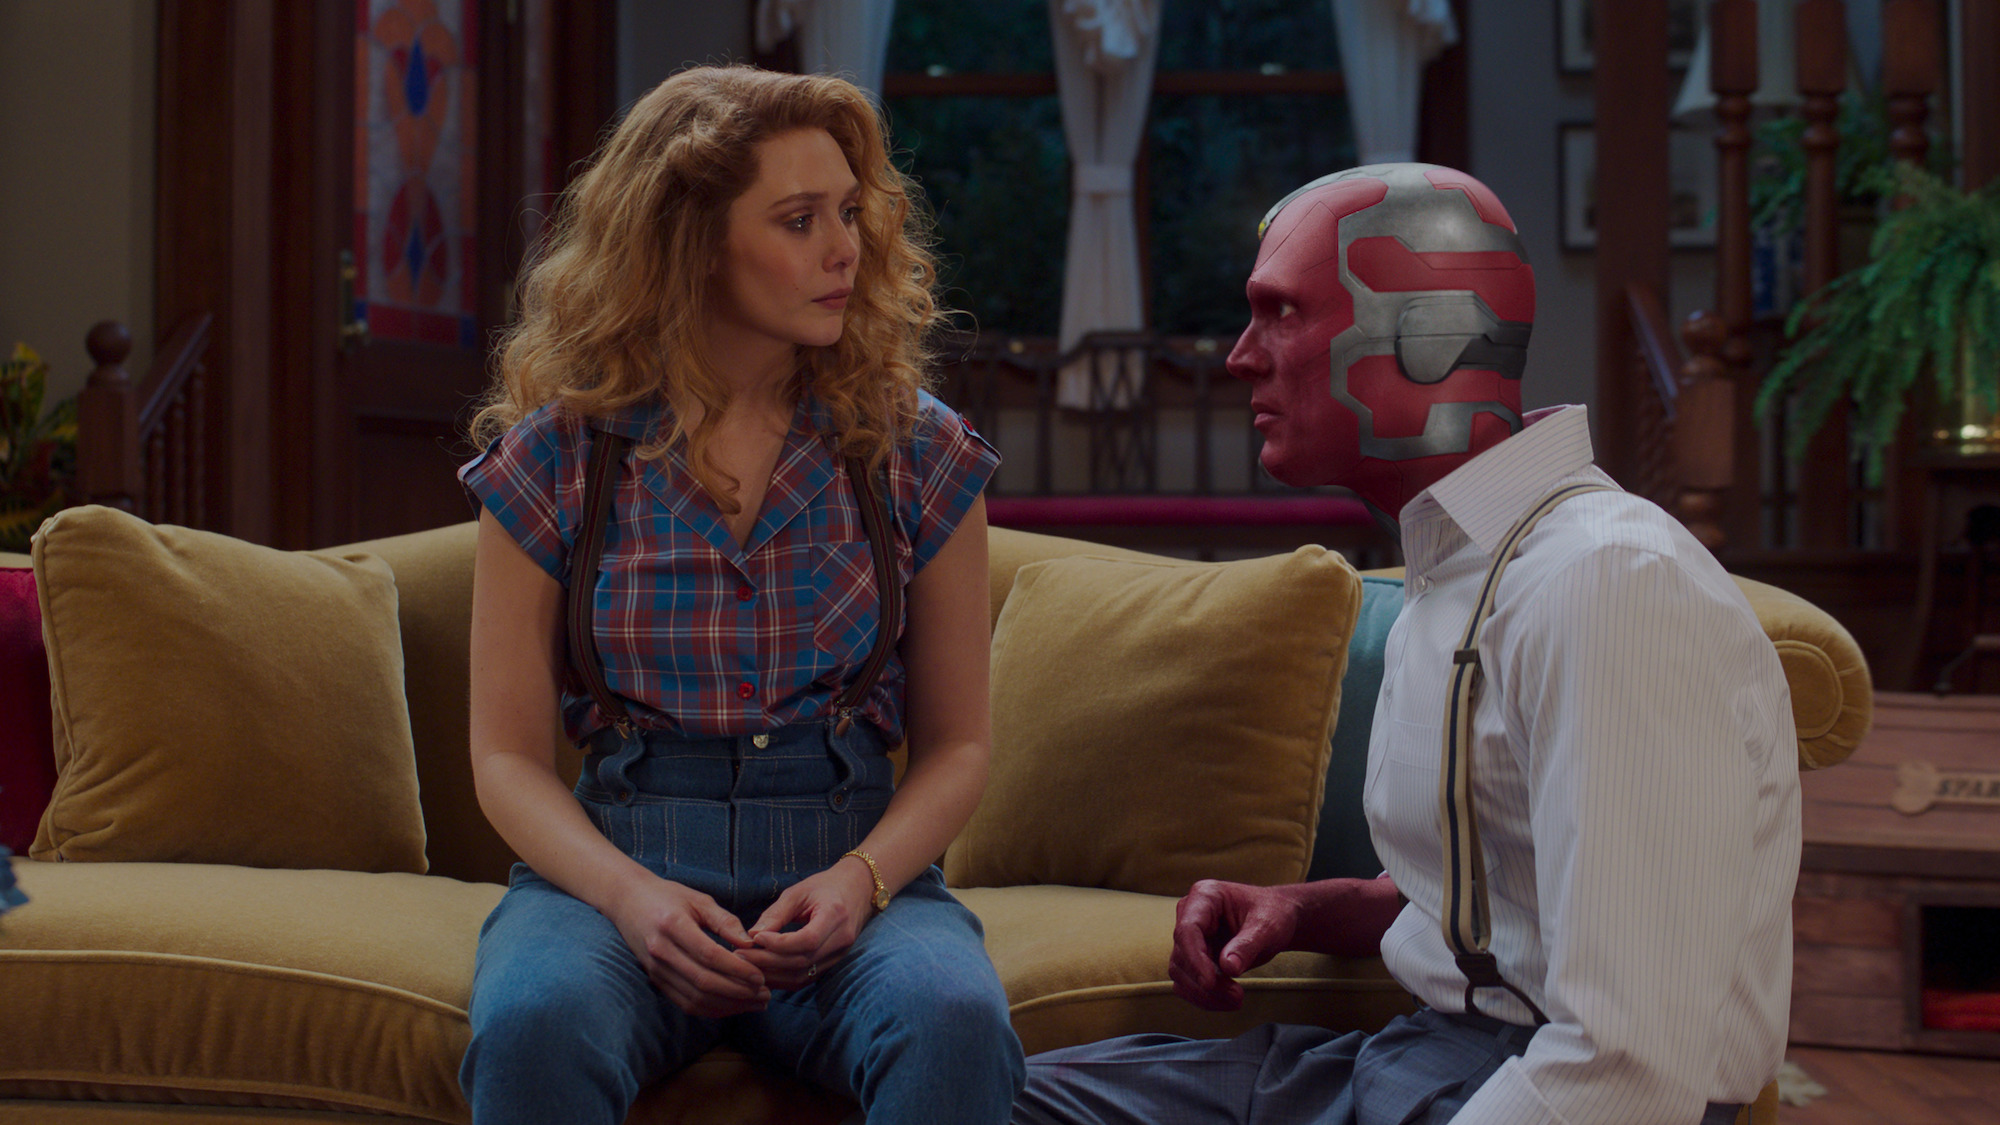 Elizabeth Olsen as Wanda Maximoff and Paul Bettany as Vision in their 80s attire on 'WandaVision'